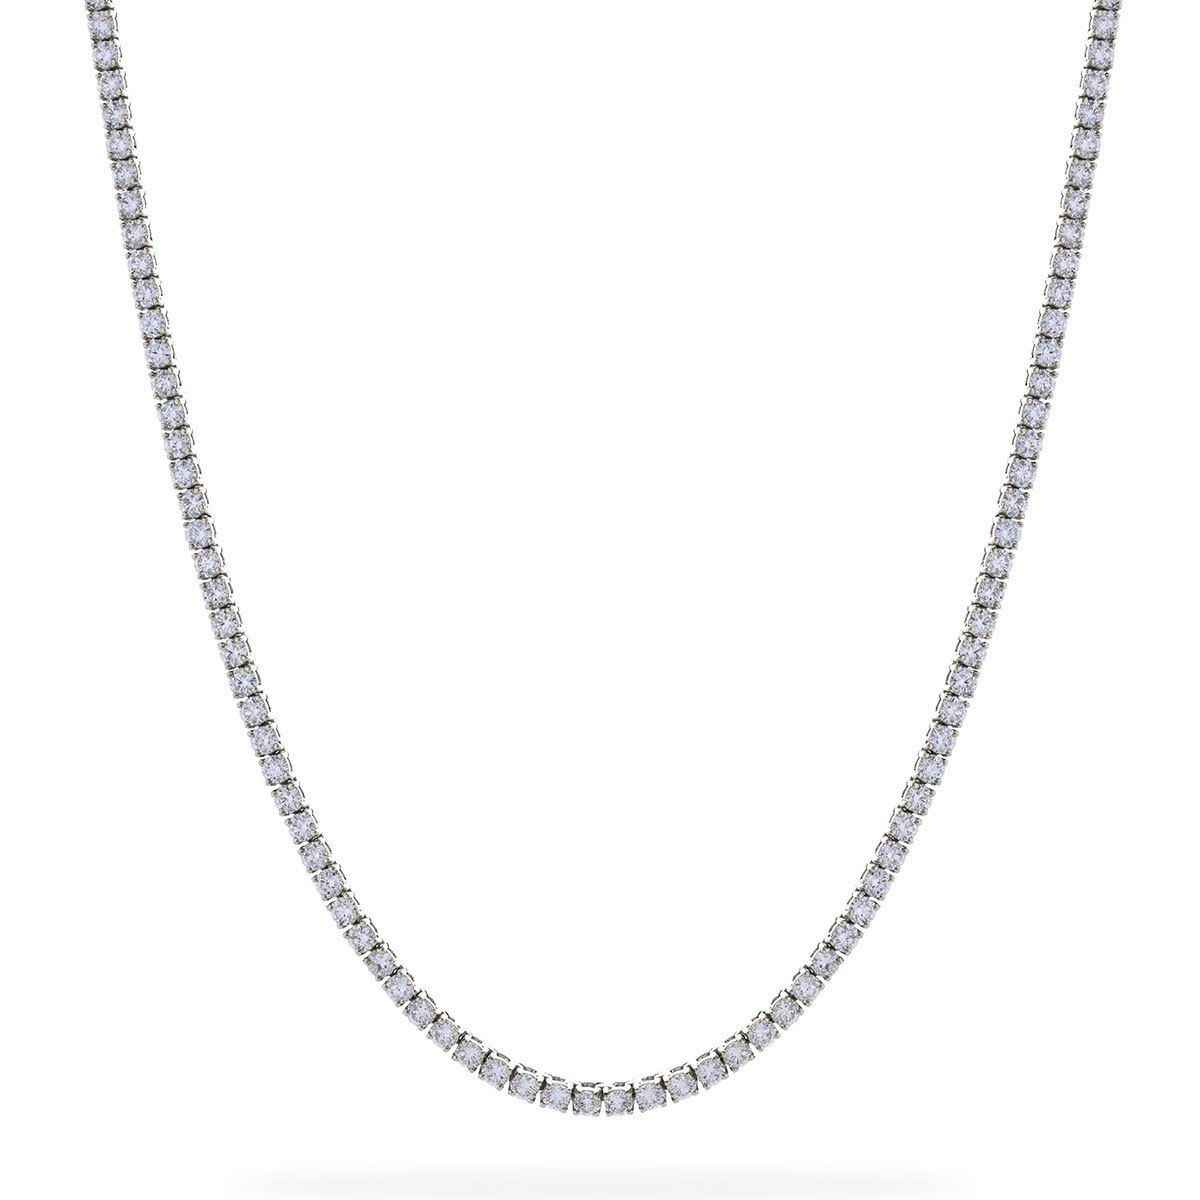 4ct Diamond Tennis Necklace